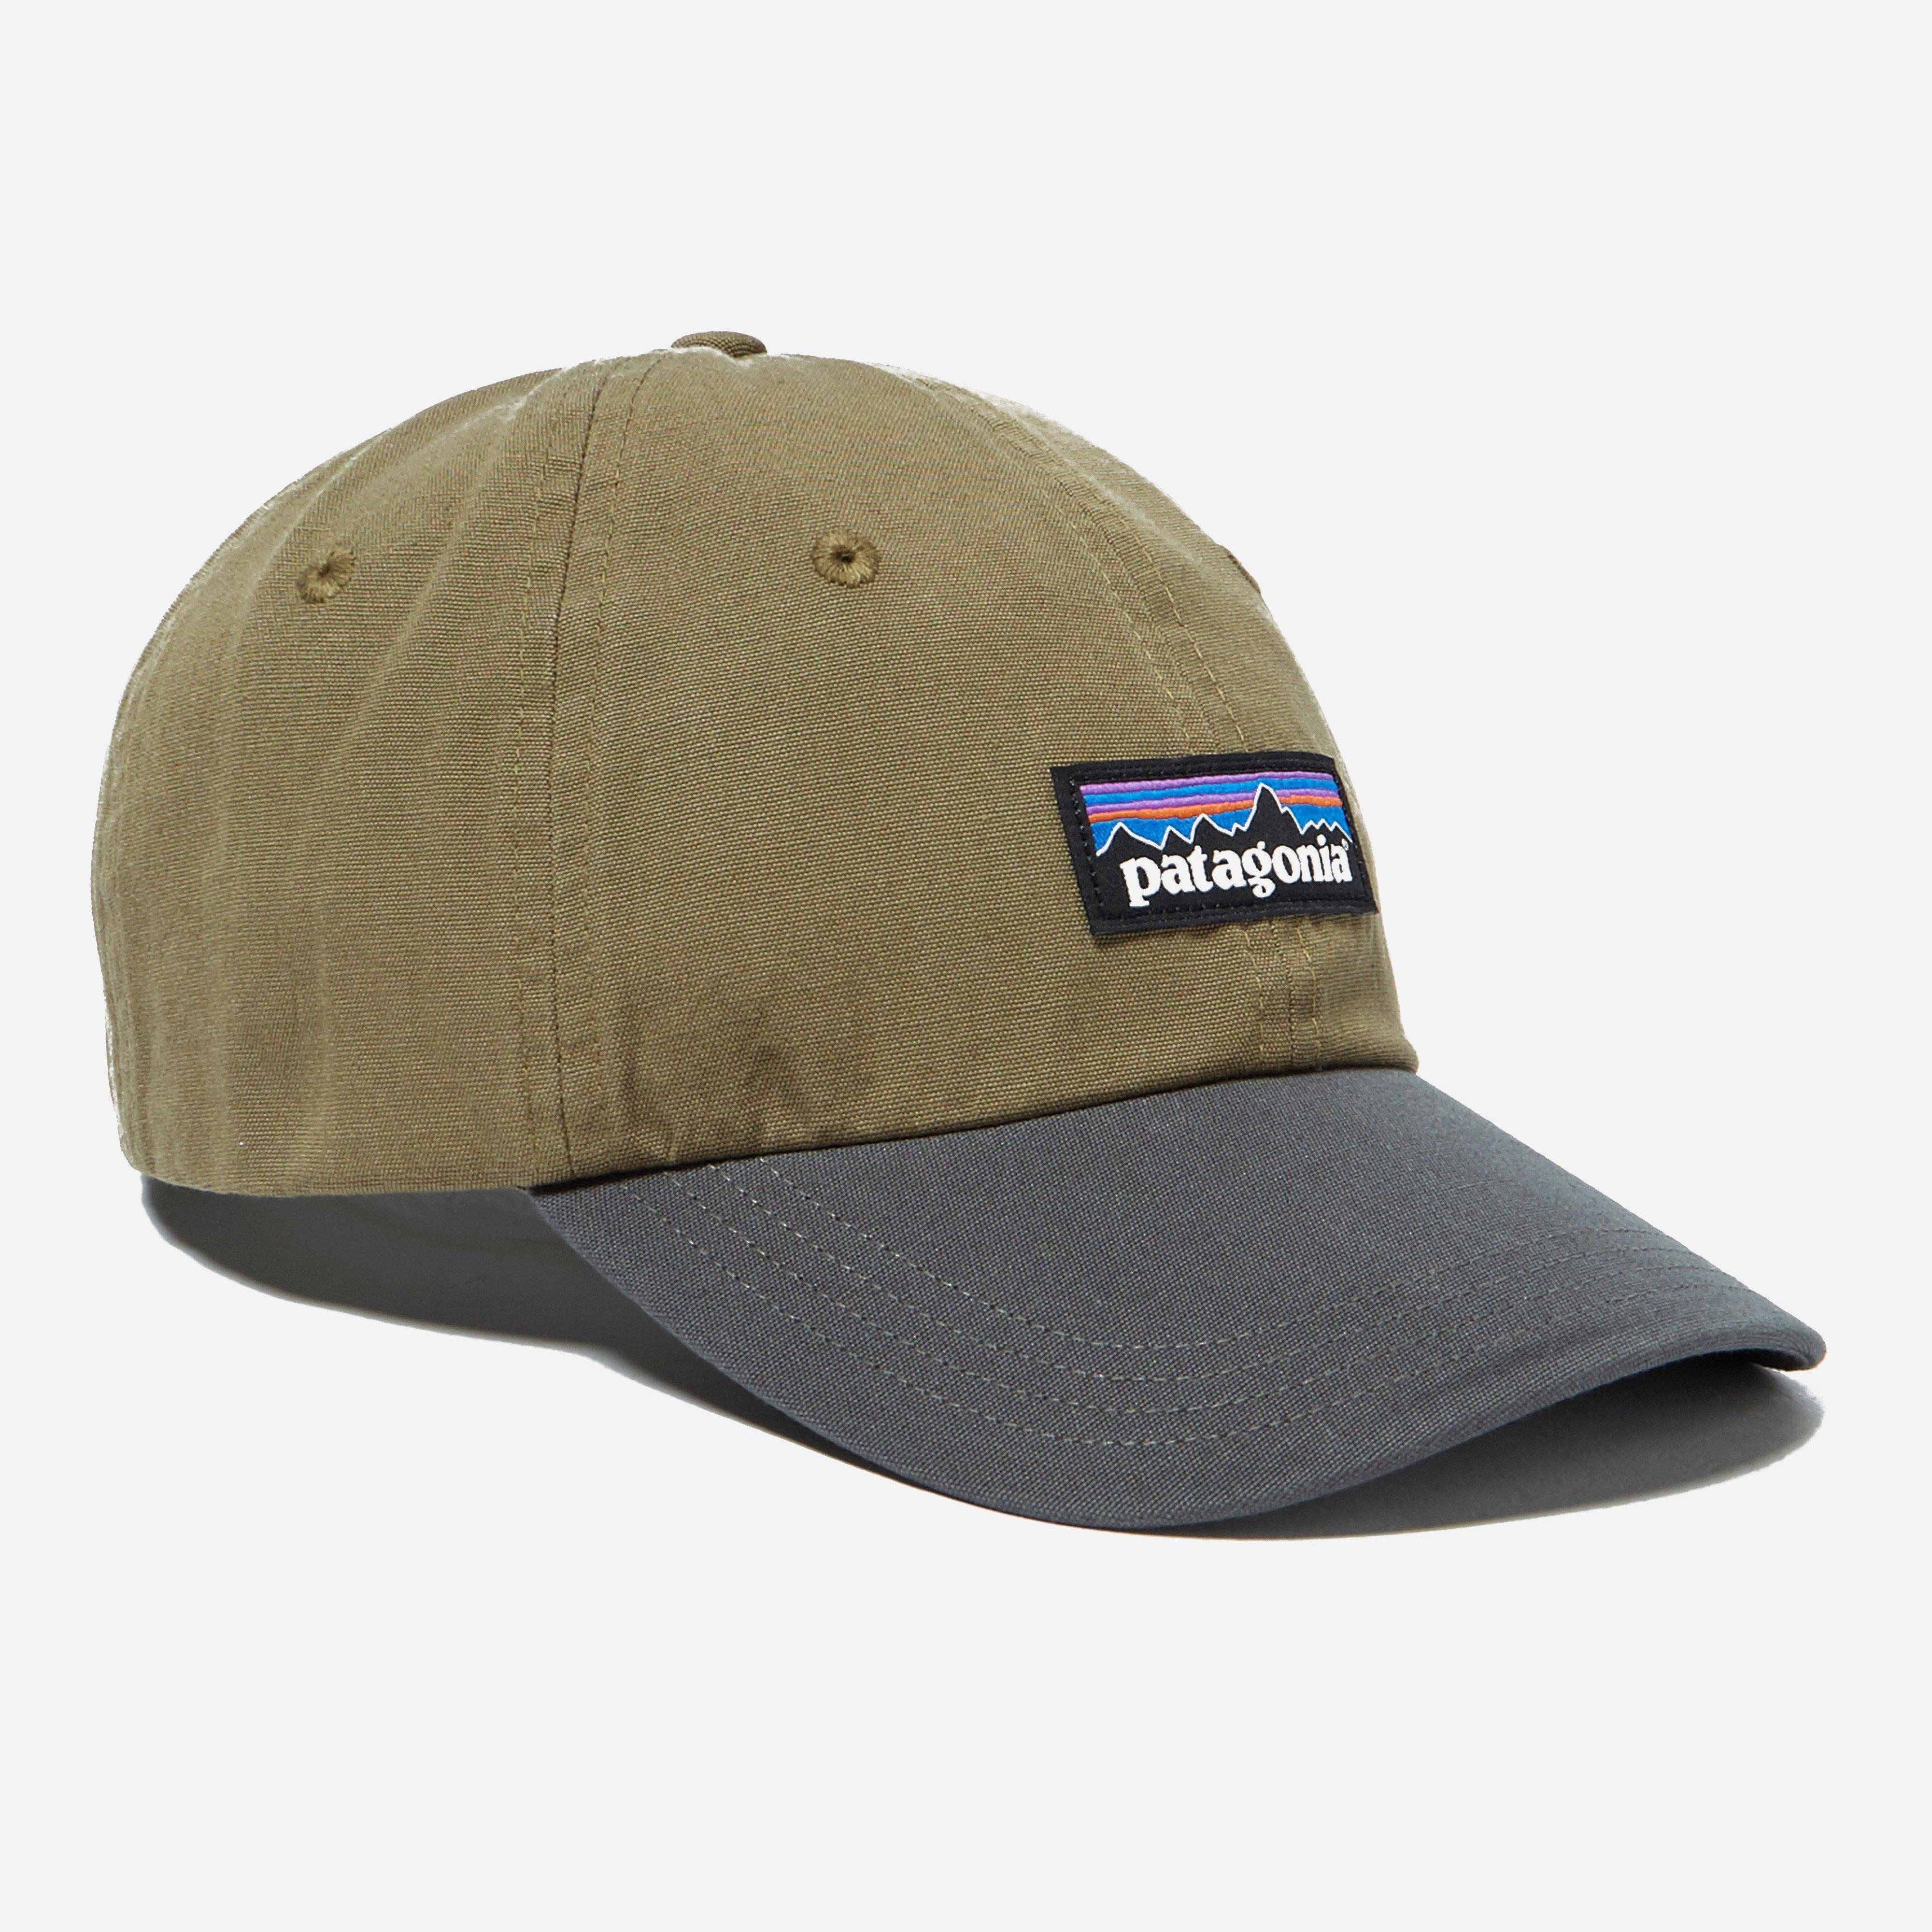 d6ac3a21dc1 Lyst - Patagonia P6 Label Trad Cap in Green for Men